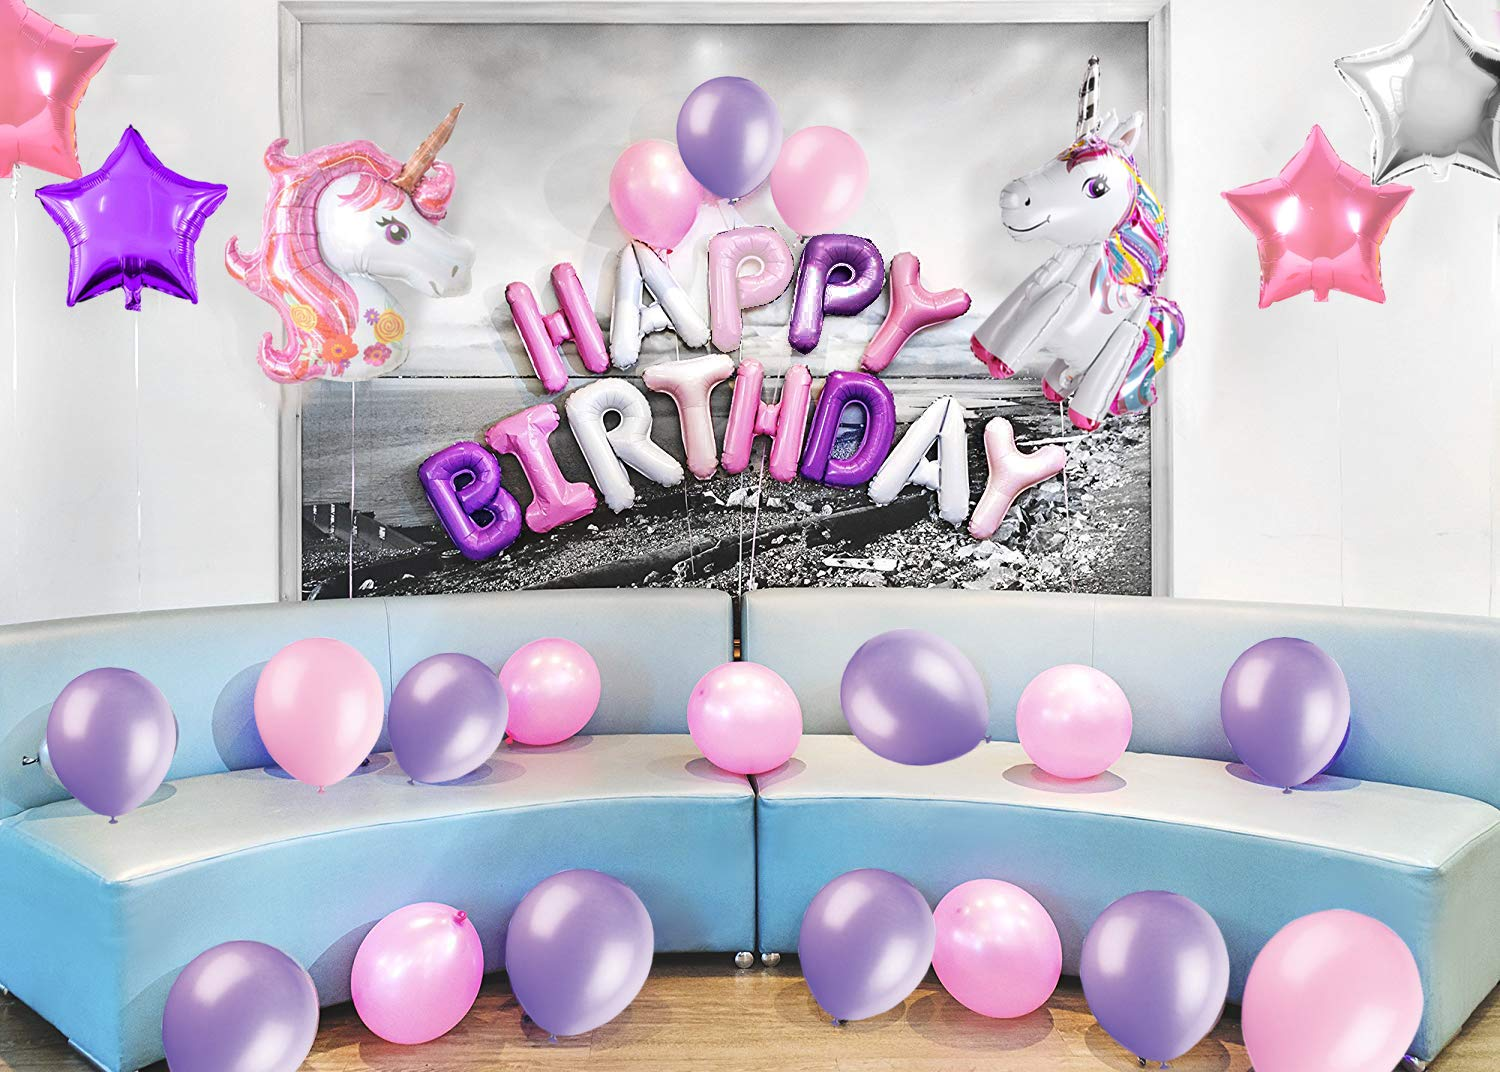 38Pack Magical Unicorn Party Supplies and Banner YJG Headband Unicorn Party Decorations with Bonus Unicorn Cake Topper Perfect for Birthday Party Balloons